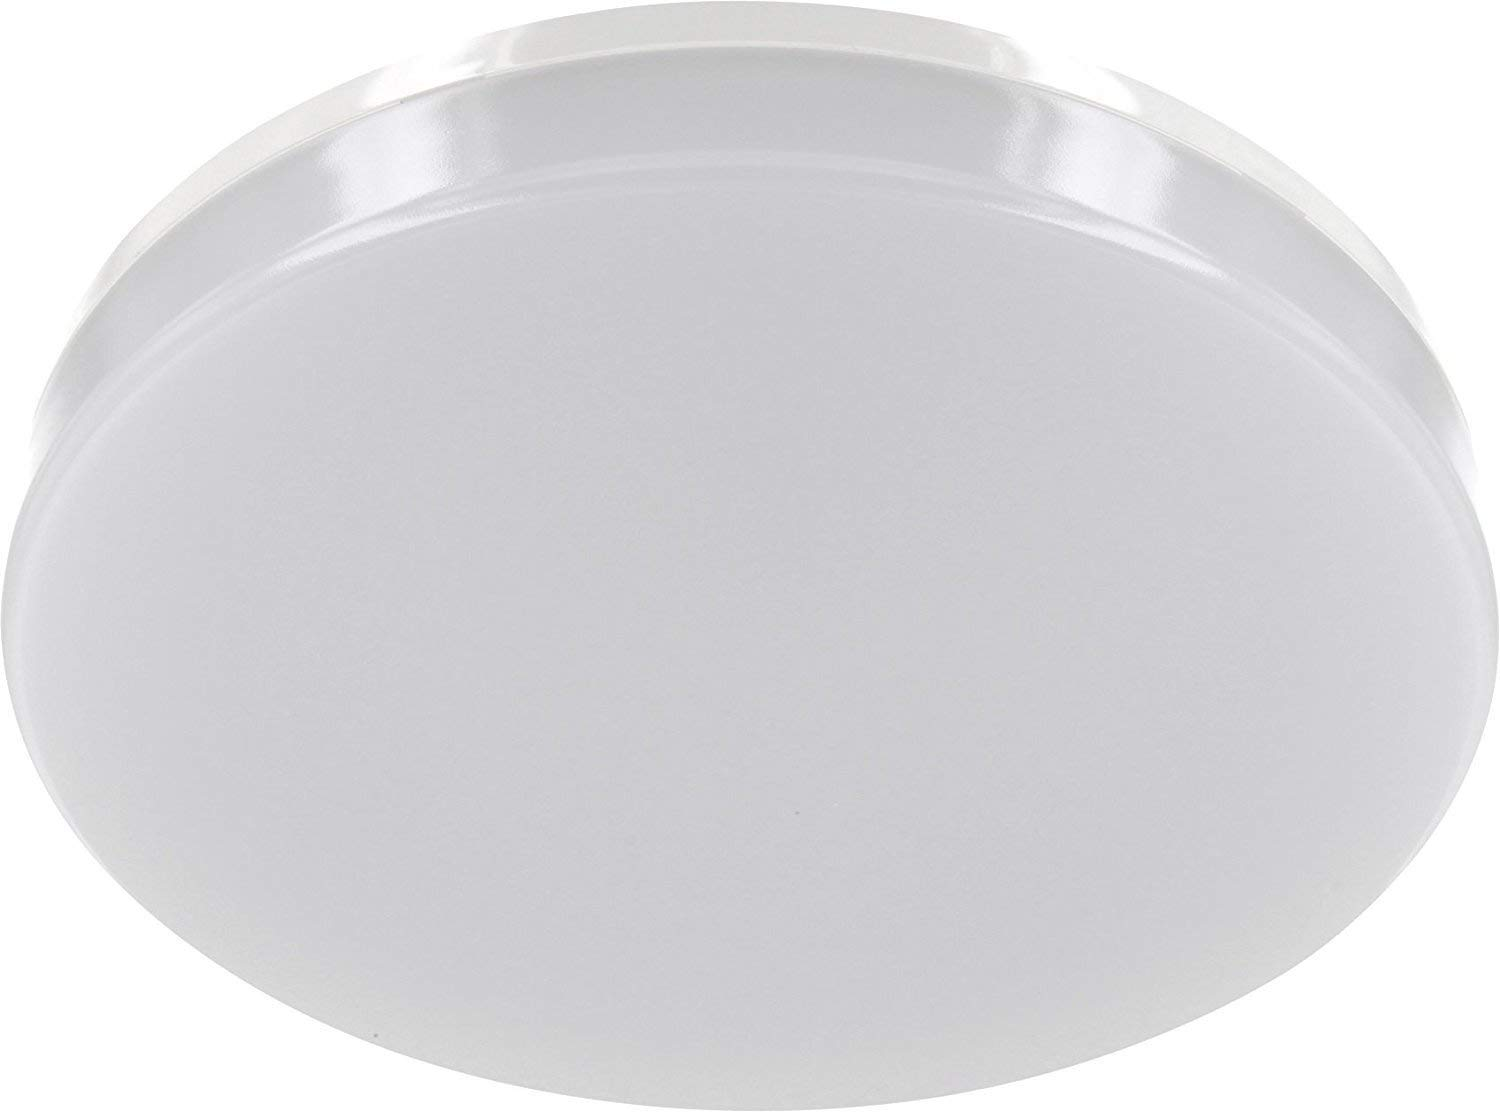 Design ultrasottile LED montaggio Panel IP44 230 V – tagesweiss (4000 K) moderno 24W - eckig - 330mm HAVA